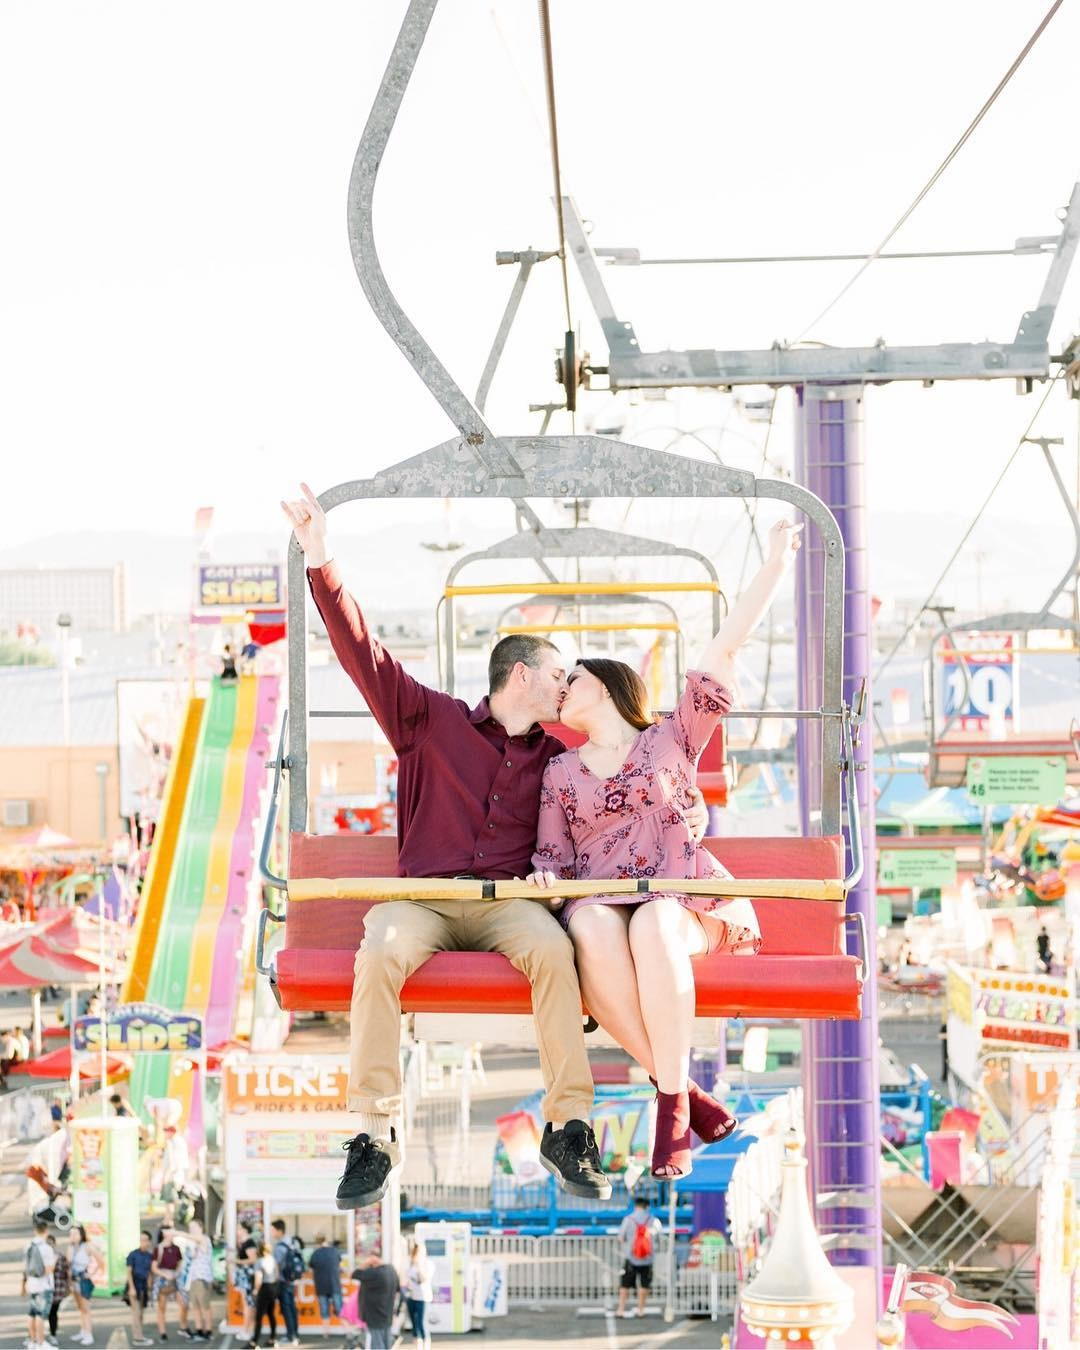 Skylift for your engagement session, anyone?!